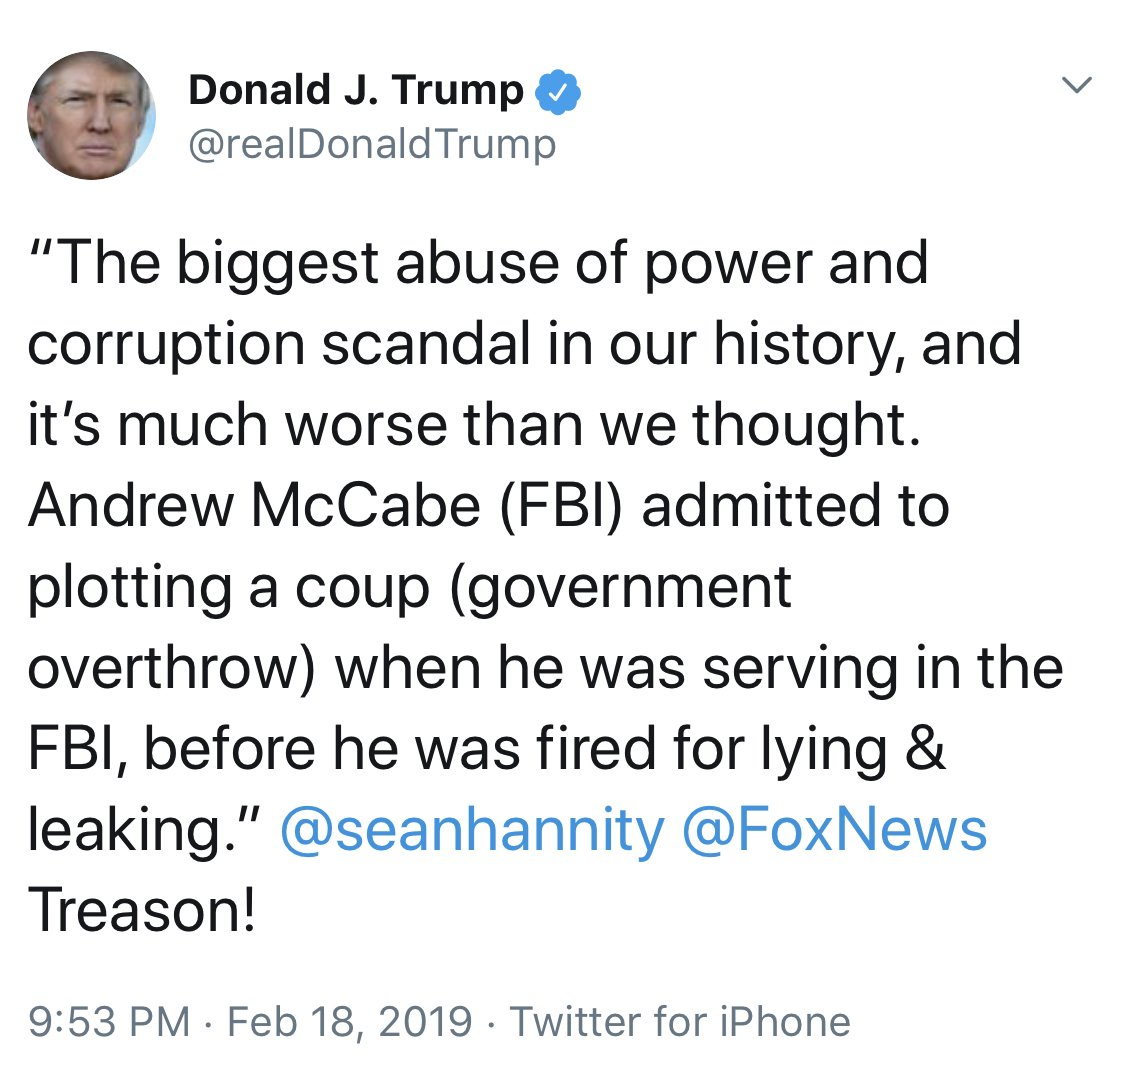 Hi, journalist covering the Middle East here. It's usually a bad sign when the leader of a country starts accusing political opponents of attempting to overthrow the government while simultaneously moving to circumvent legal limits on his power.